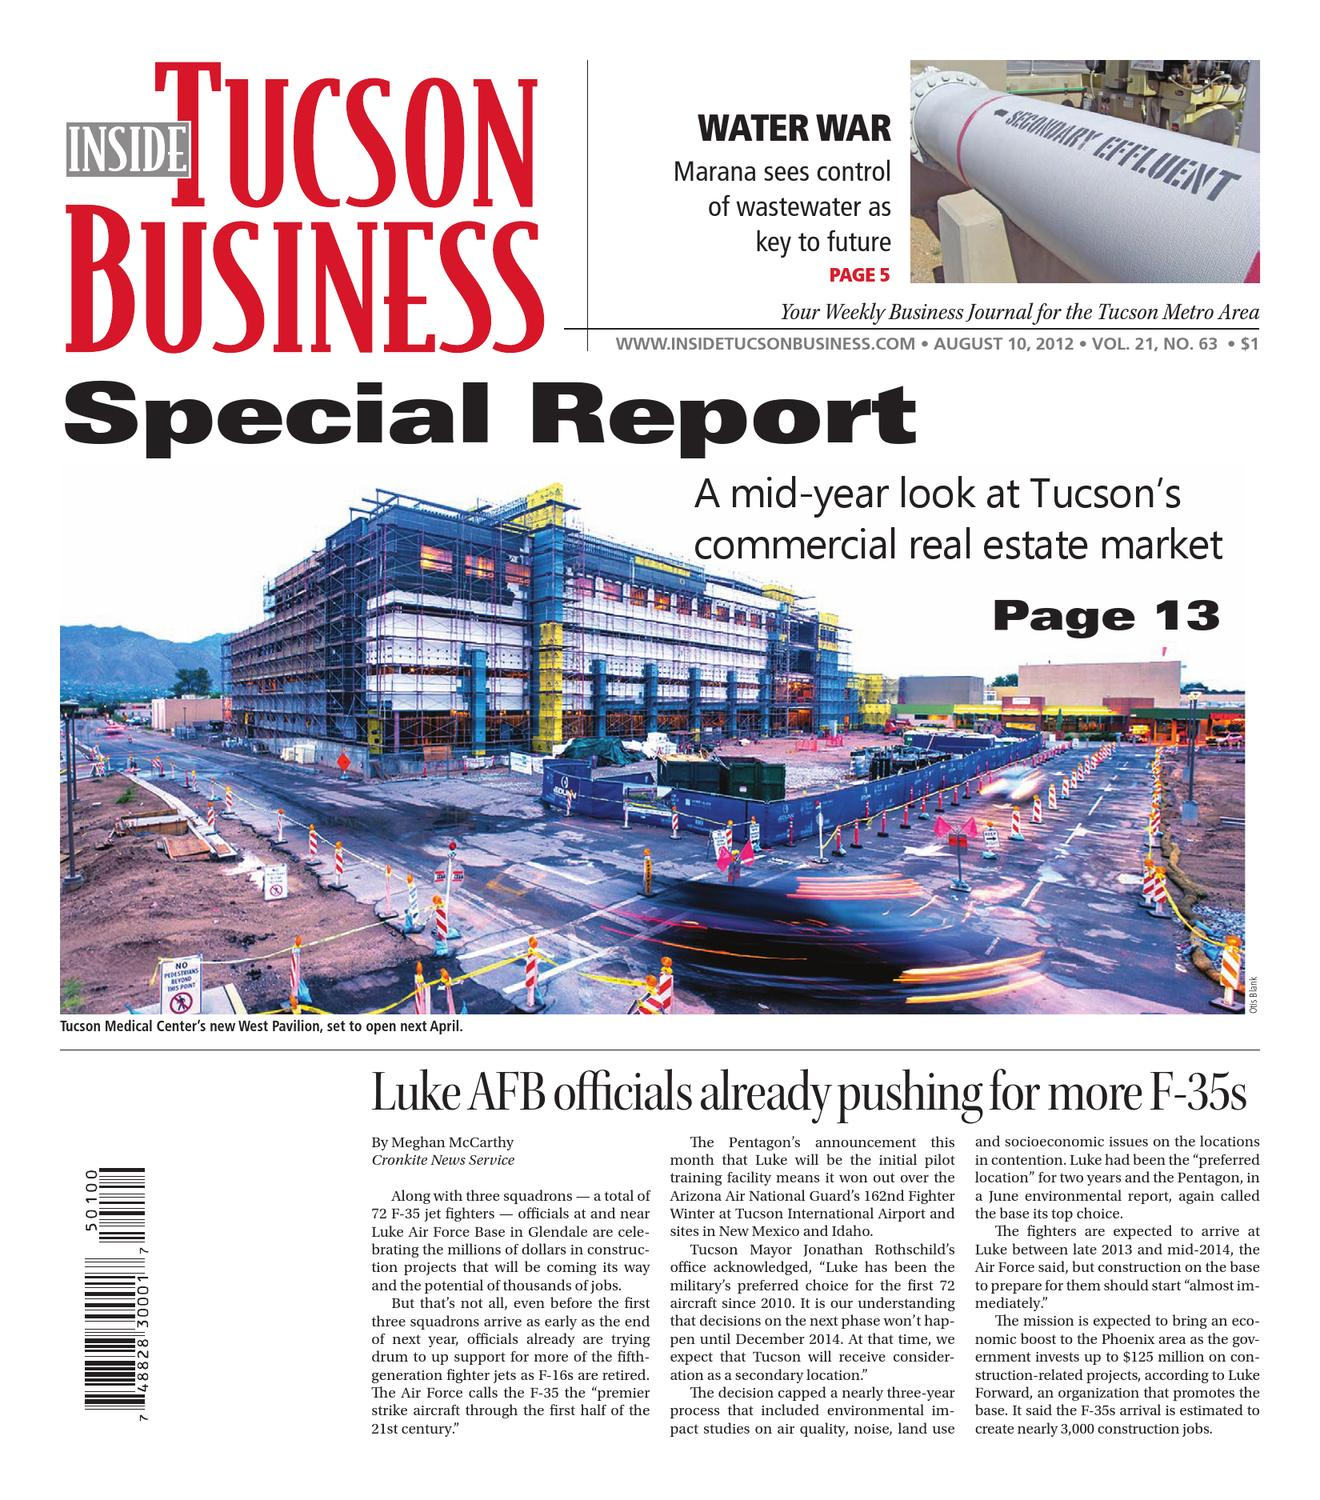 Inside Tucson Business 08 10 12 by Territorial Newspapers issuu